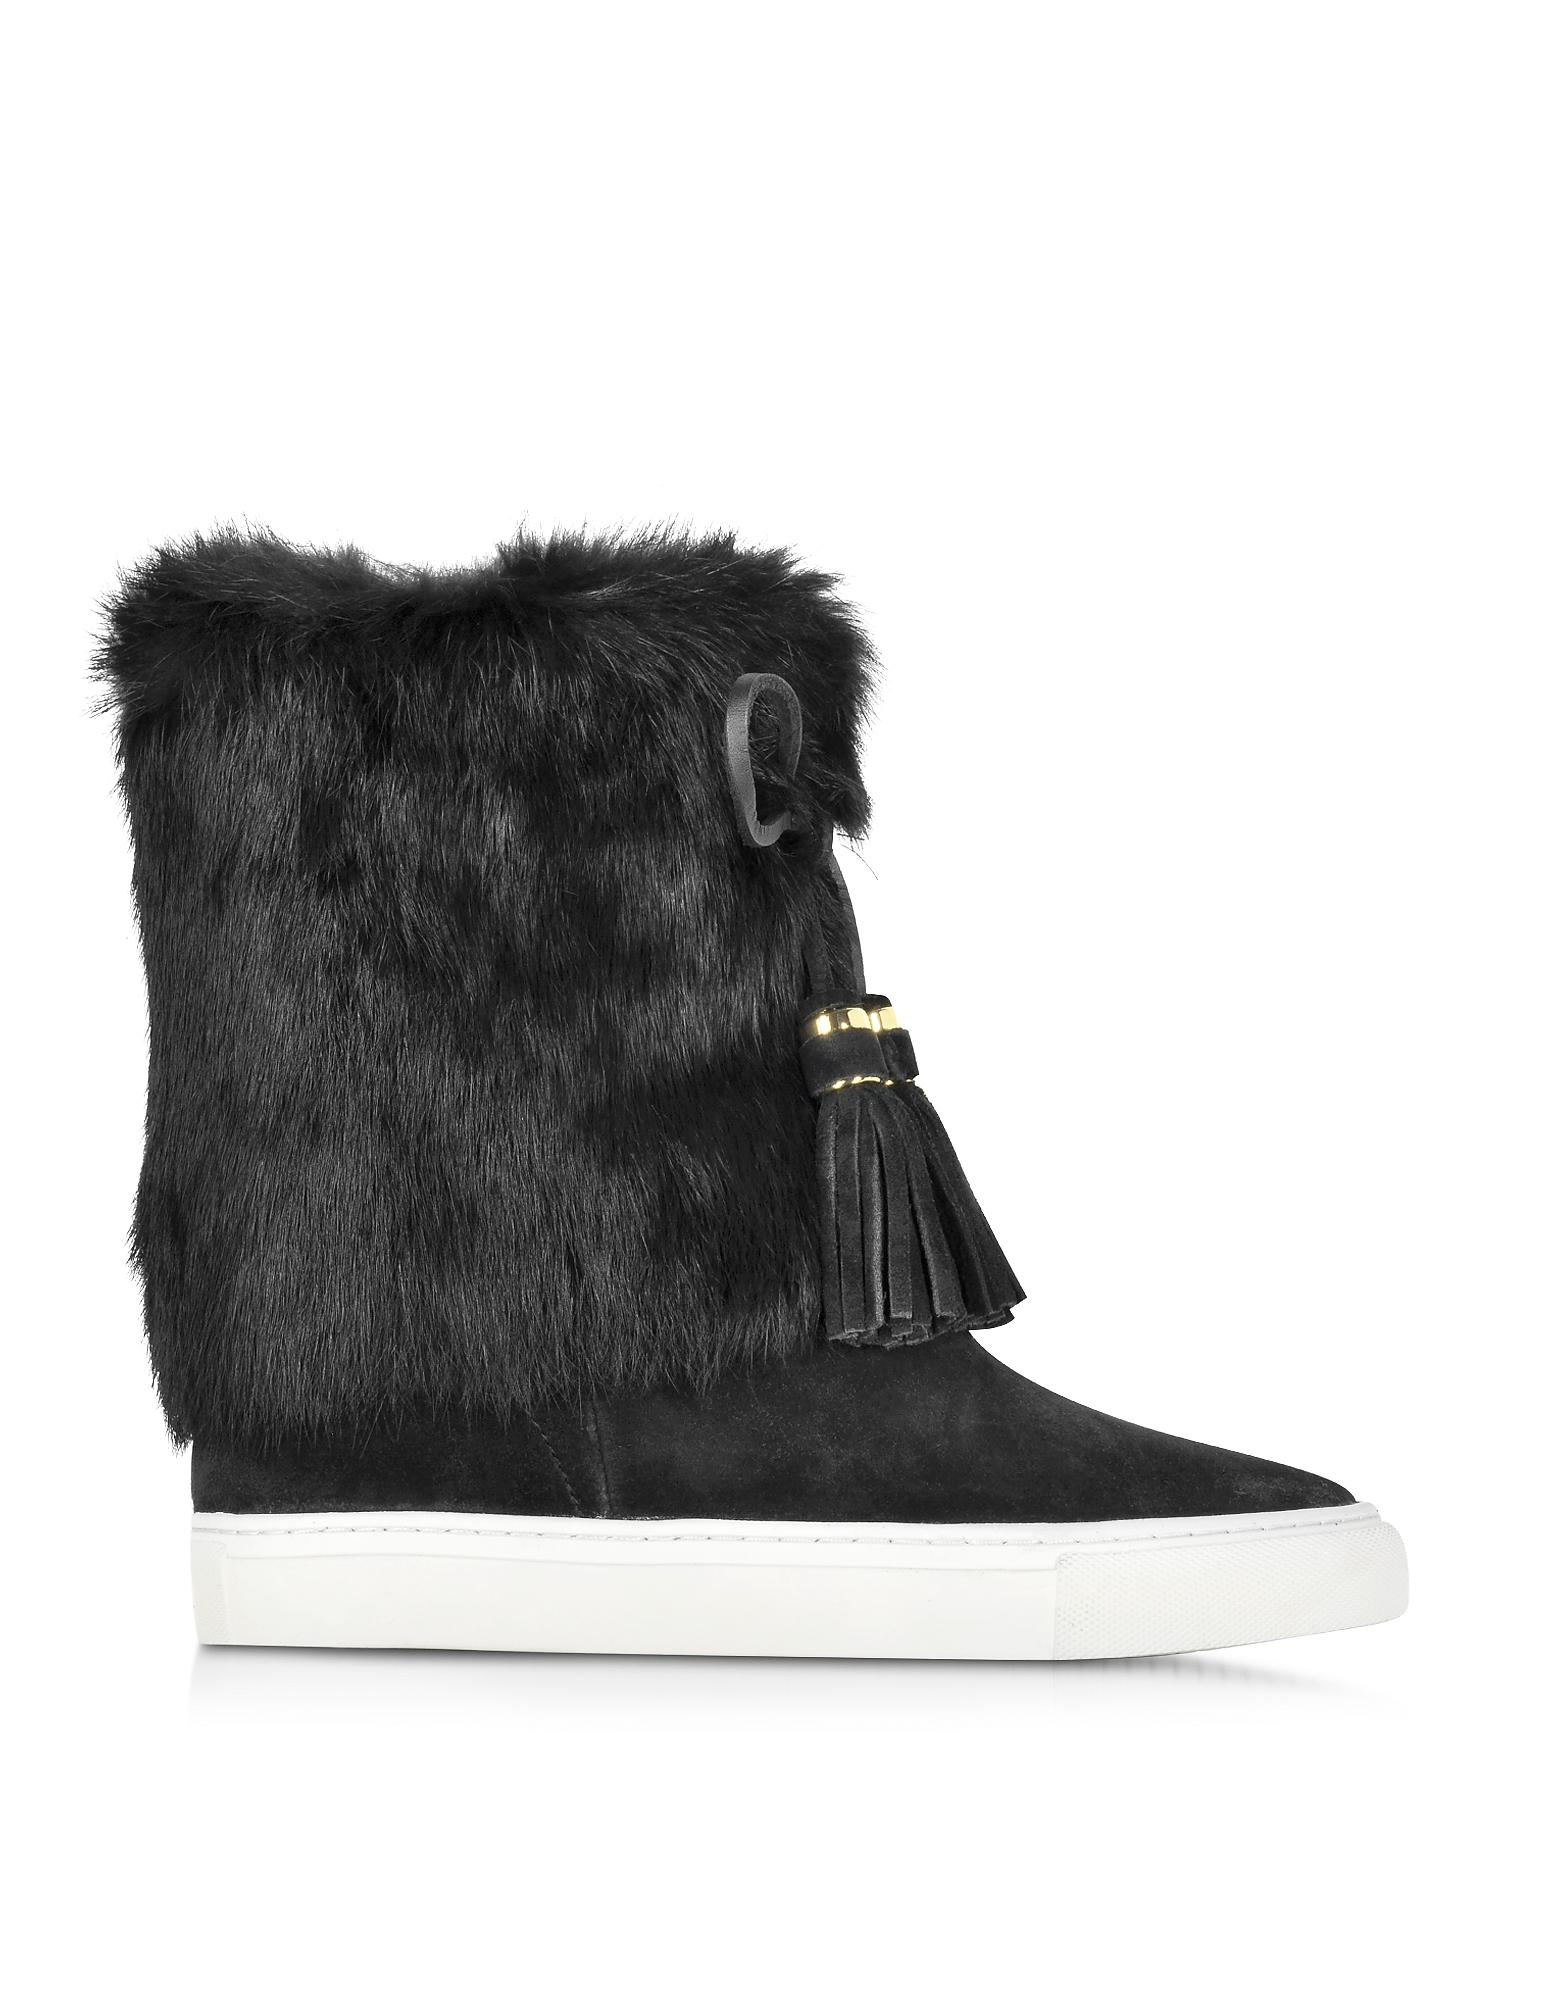 9b73695d9014 Tory Burch Anjelica Suede and Rabbit-Fur Boots in Black - Save ...